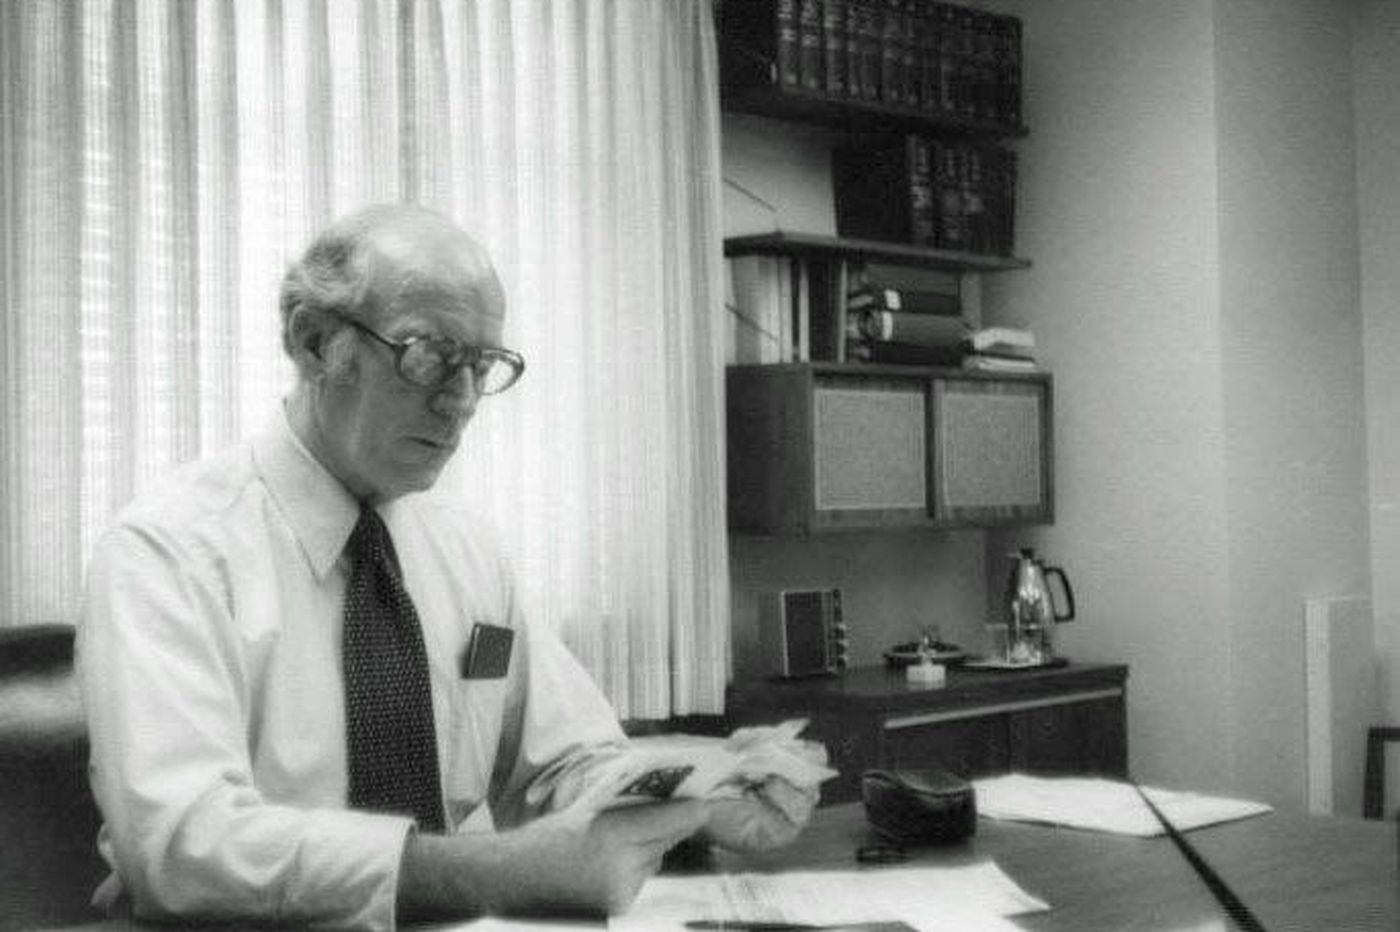 Joseph O'Dea, former Inquirer executive and family man, dies at 101